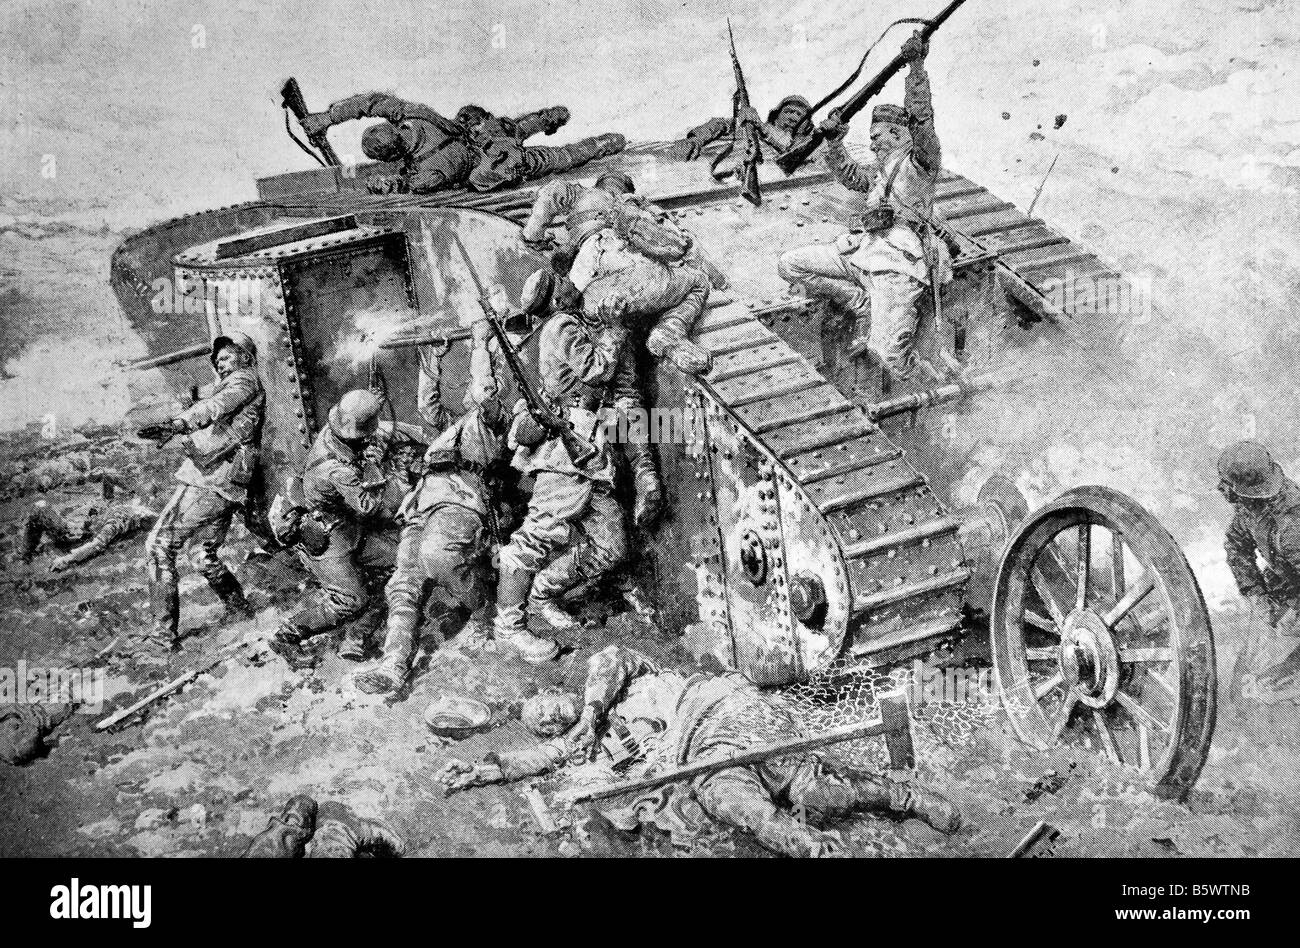 Contemporary World War One illustration of a futile attack by German soldiers on a British tank in France. - Stock Image